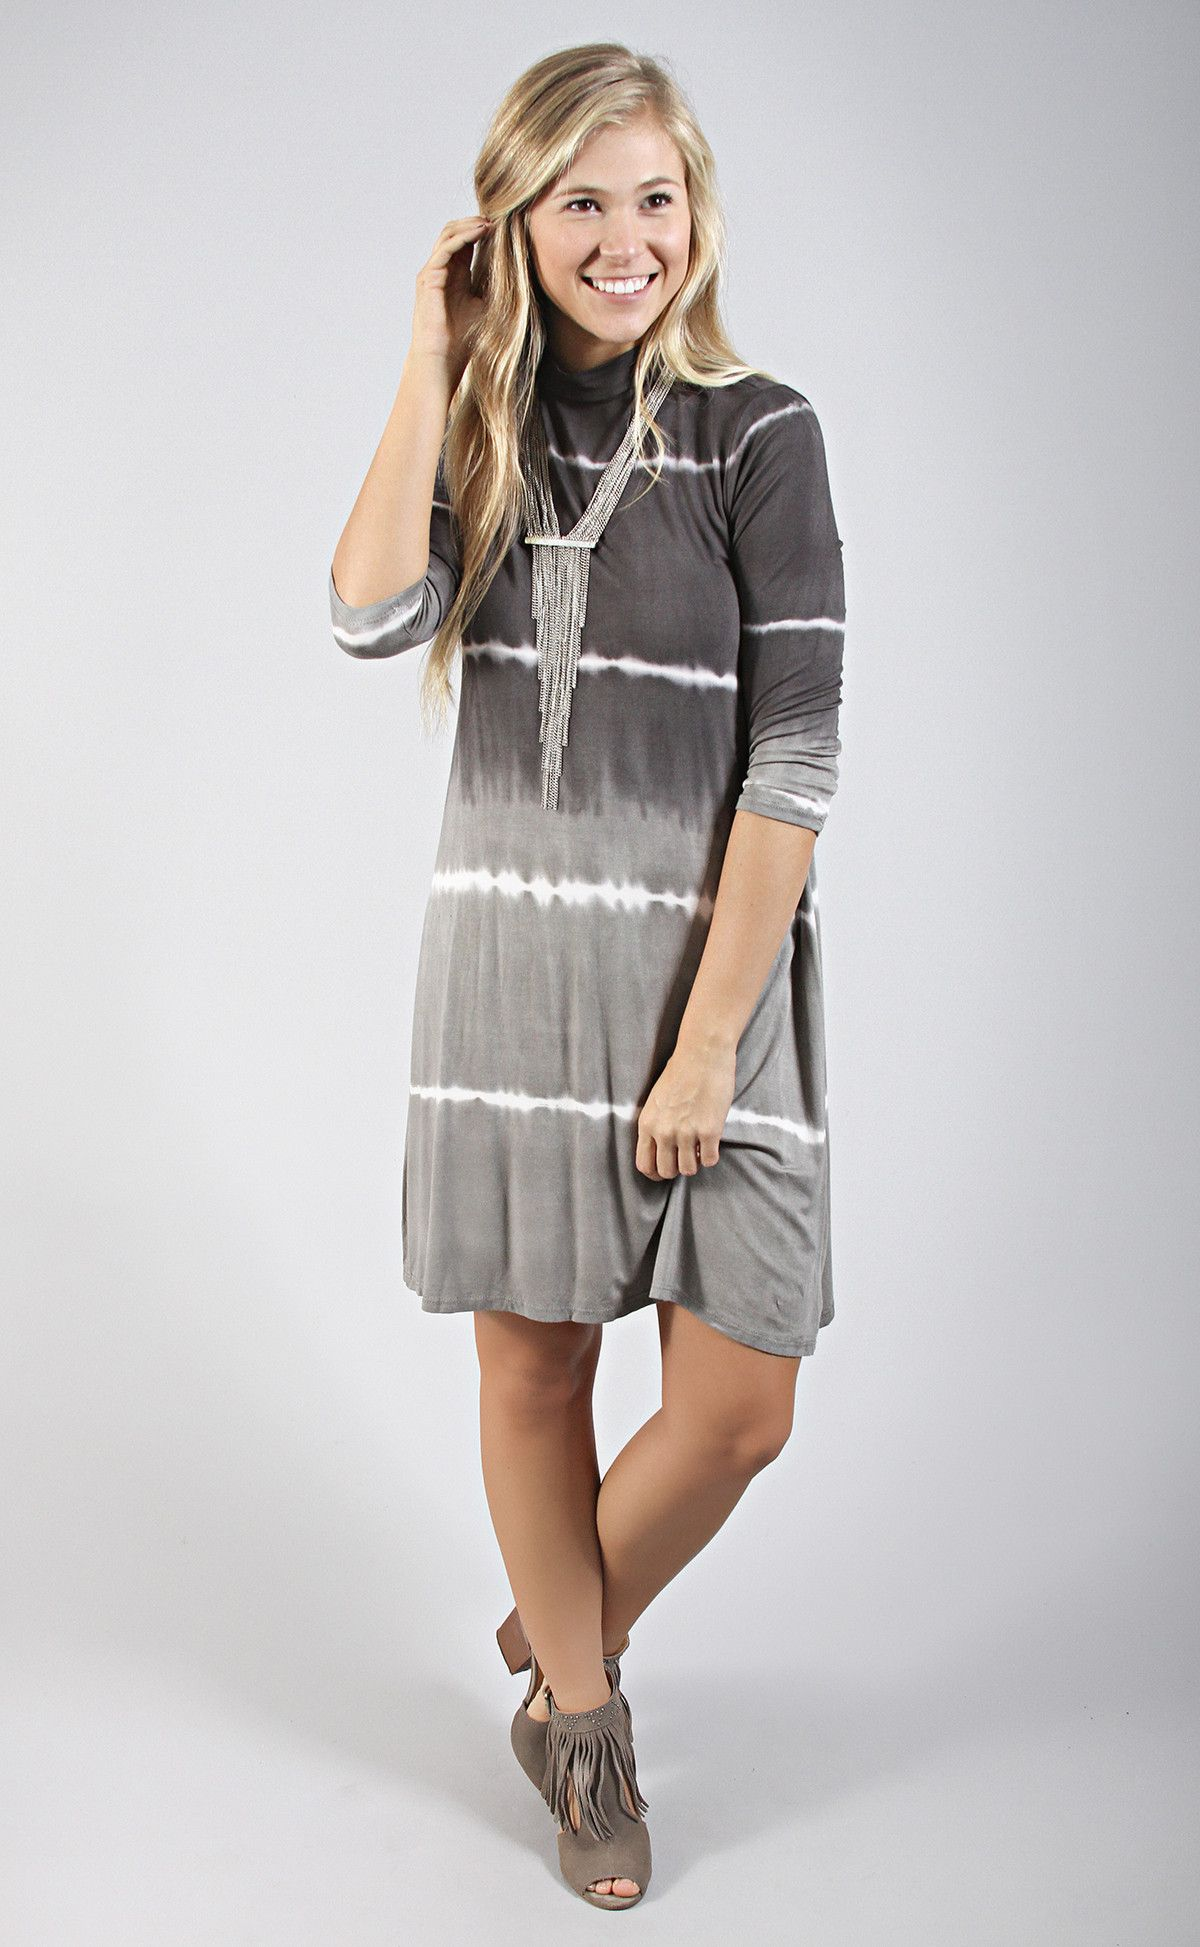 """watch out for me striped dress--get 15% off + Free Shipping w/cpde """"RiffraffRepLauren"""" at checkout on ShopRiffraff.com!"""